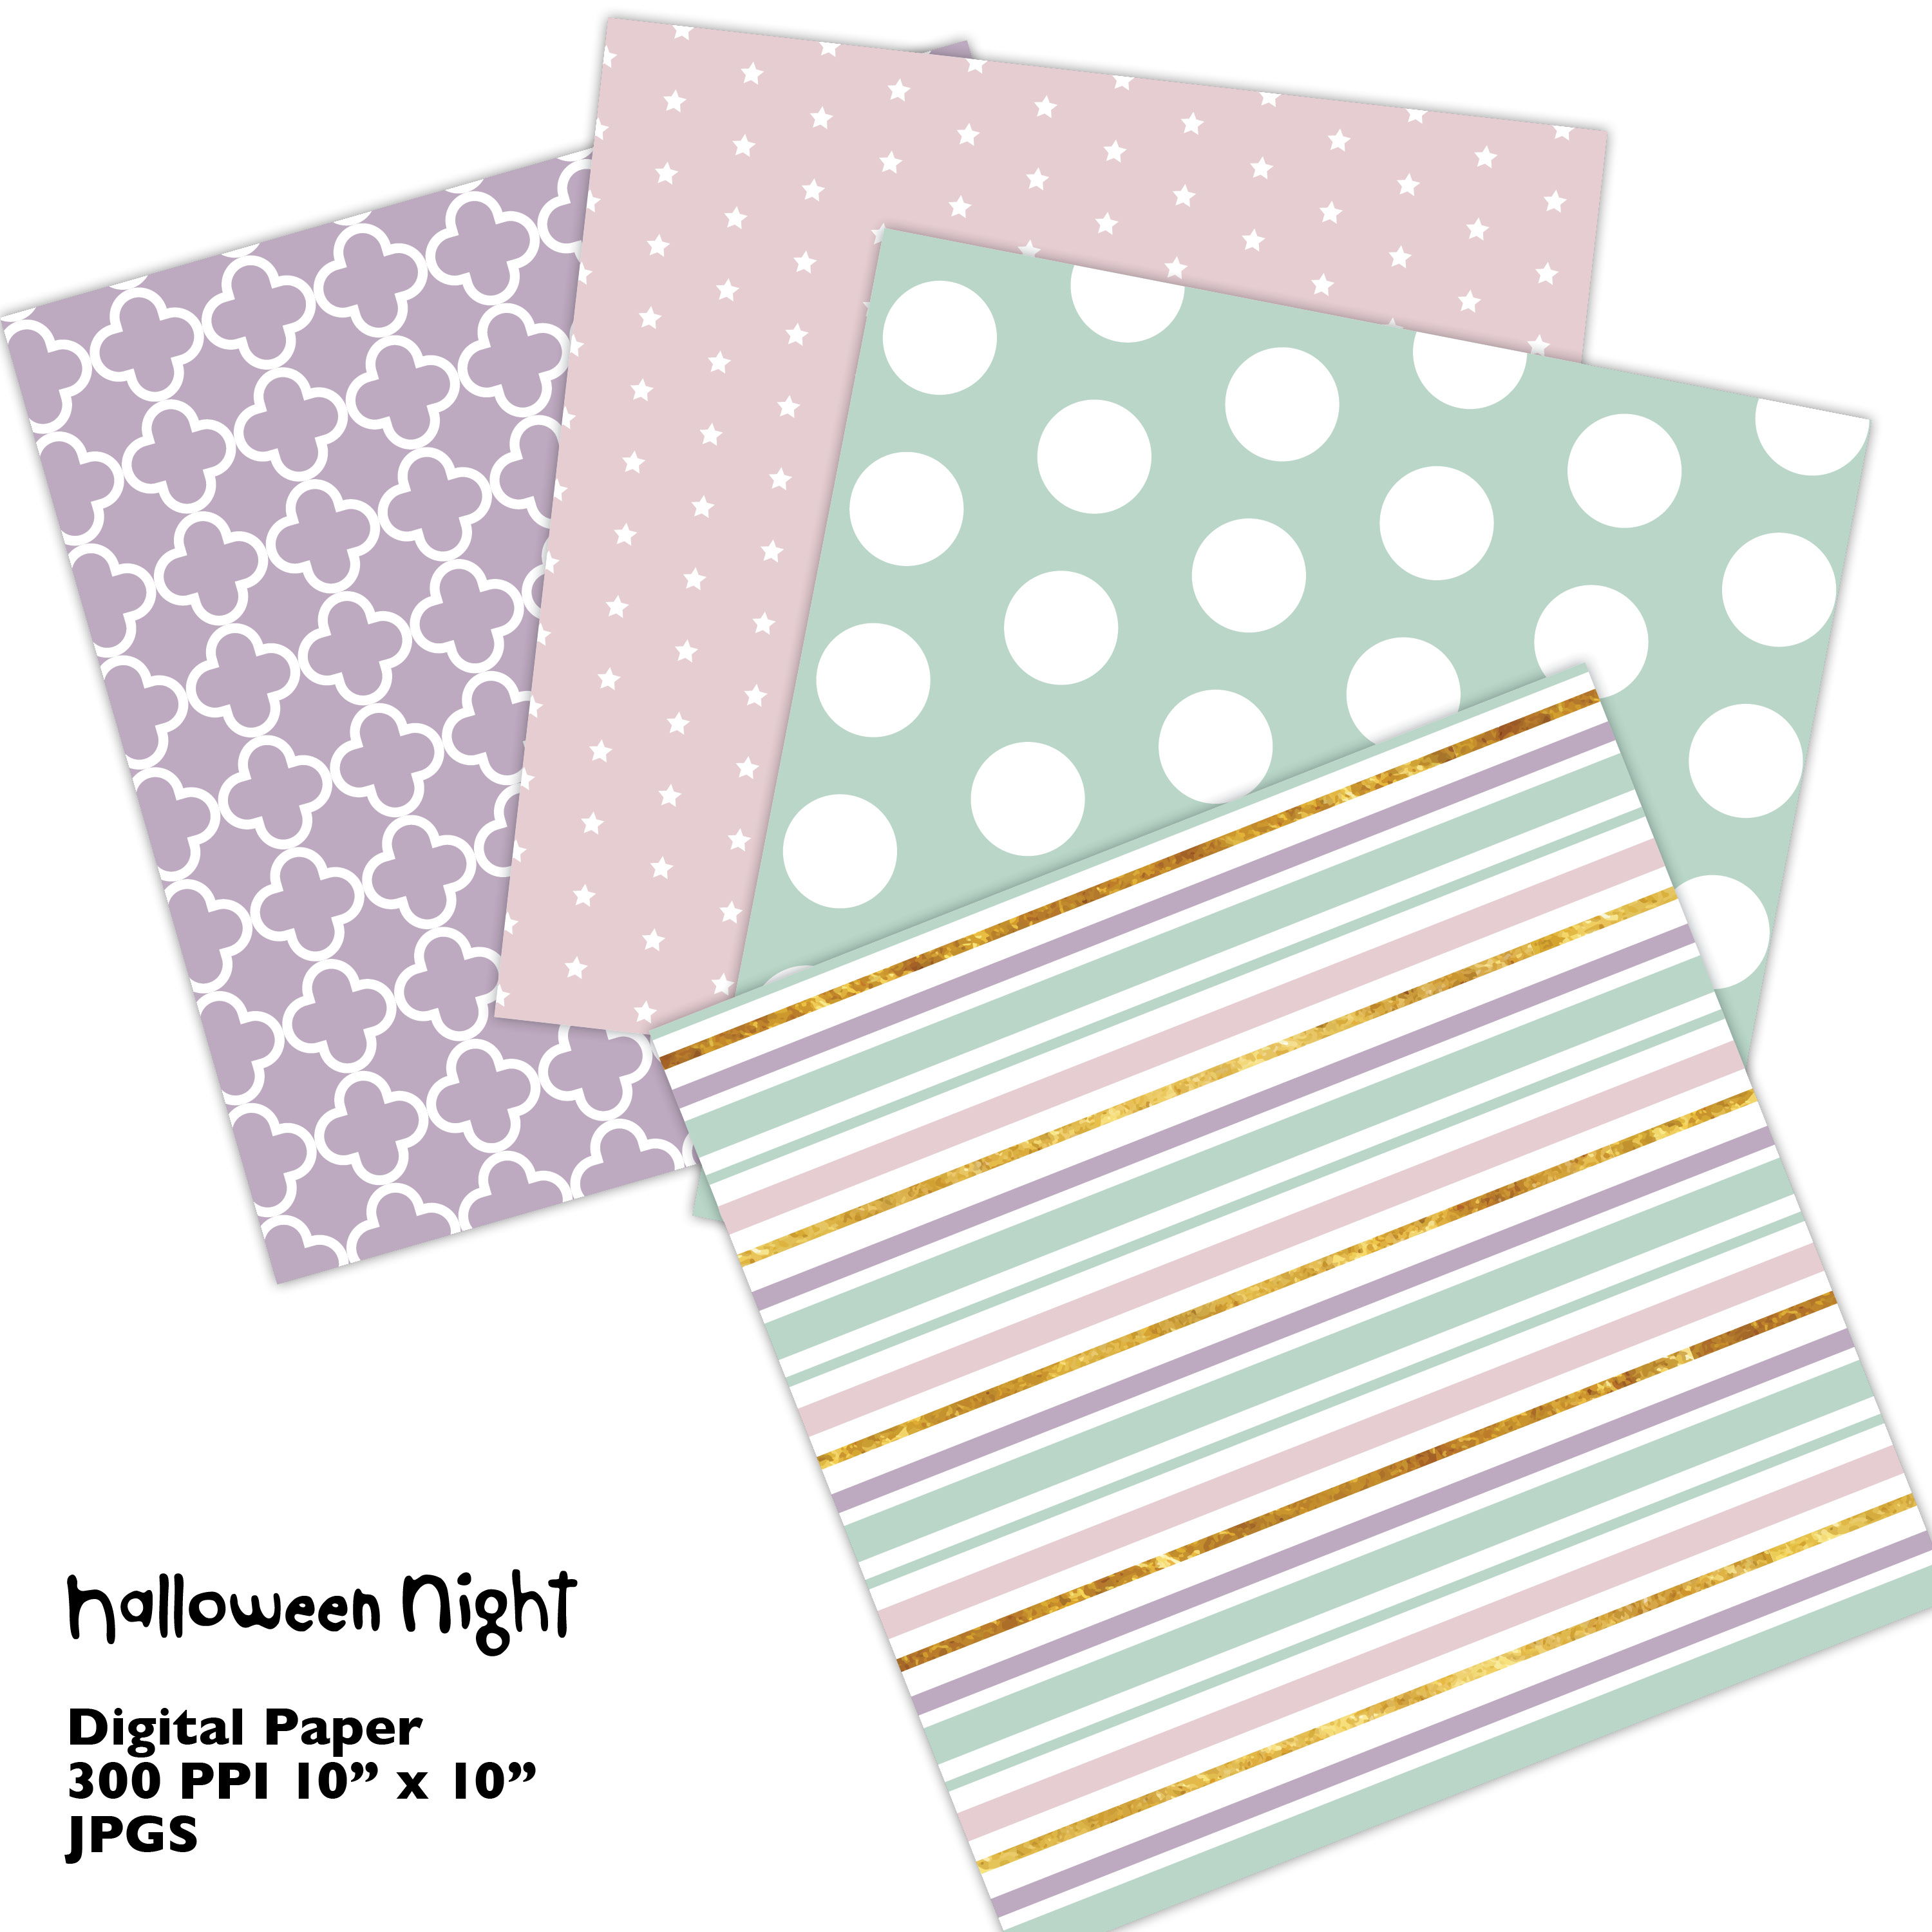 Hand Drawn Halloween Digital Paper in Pastel Colors example image 3